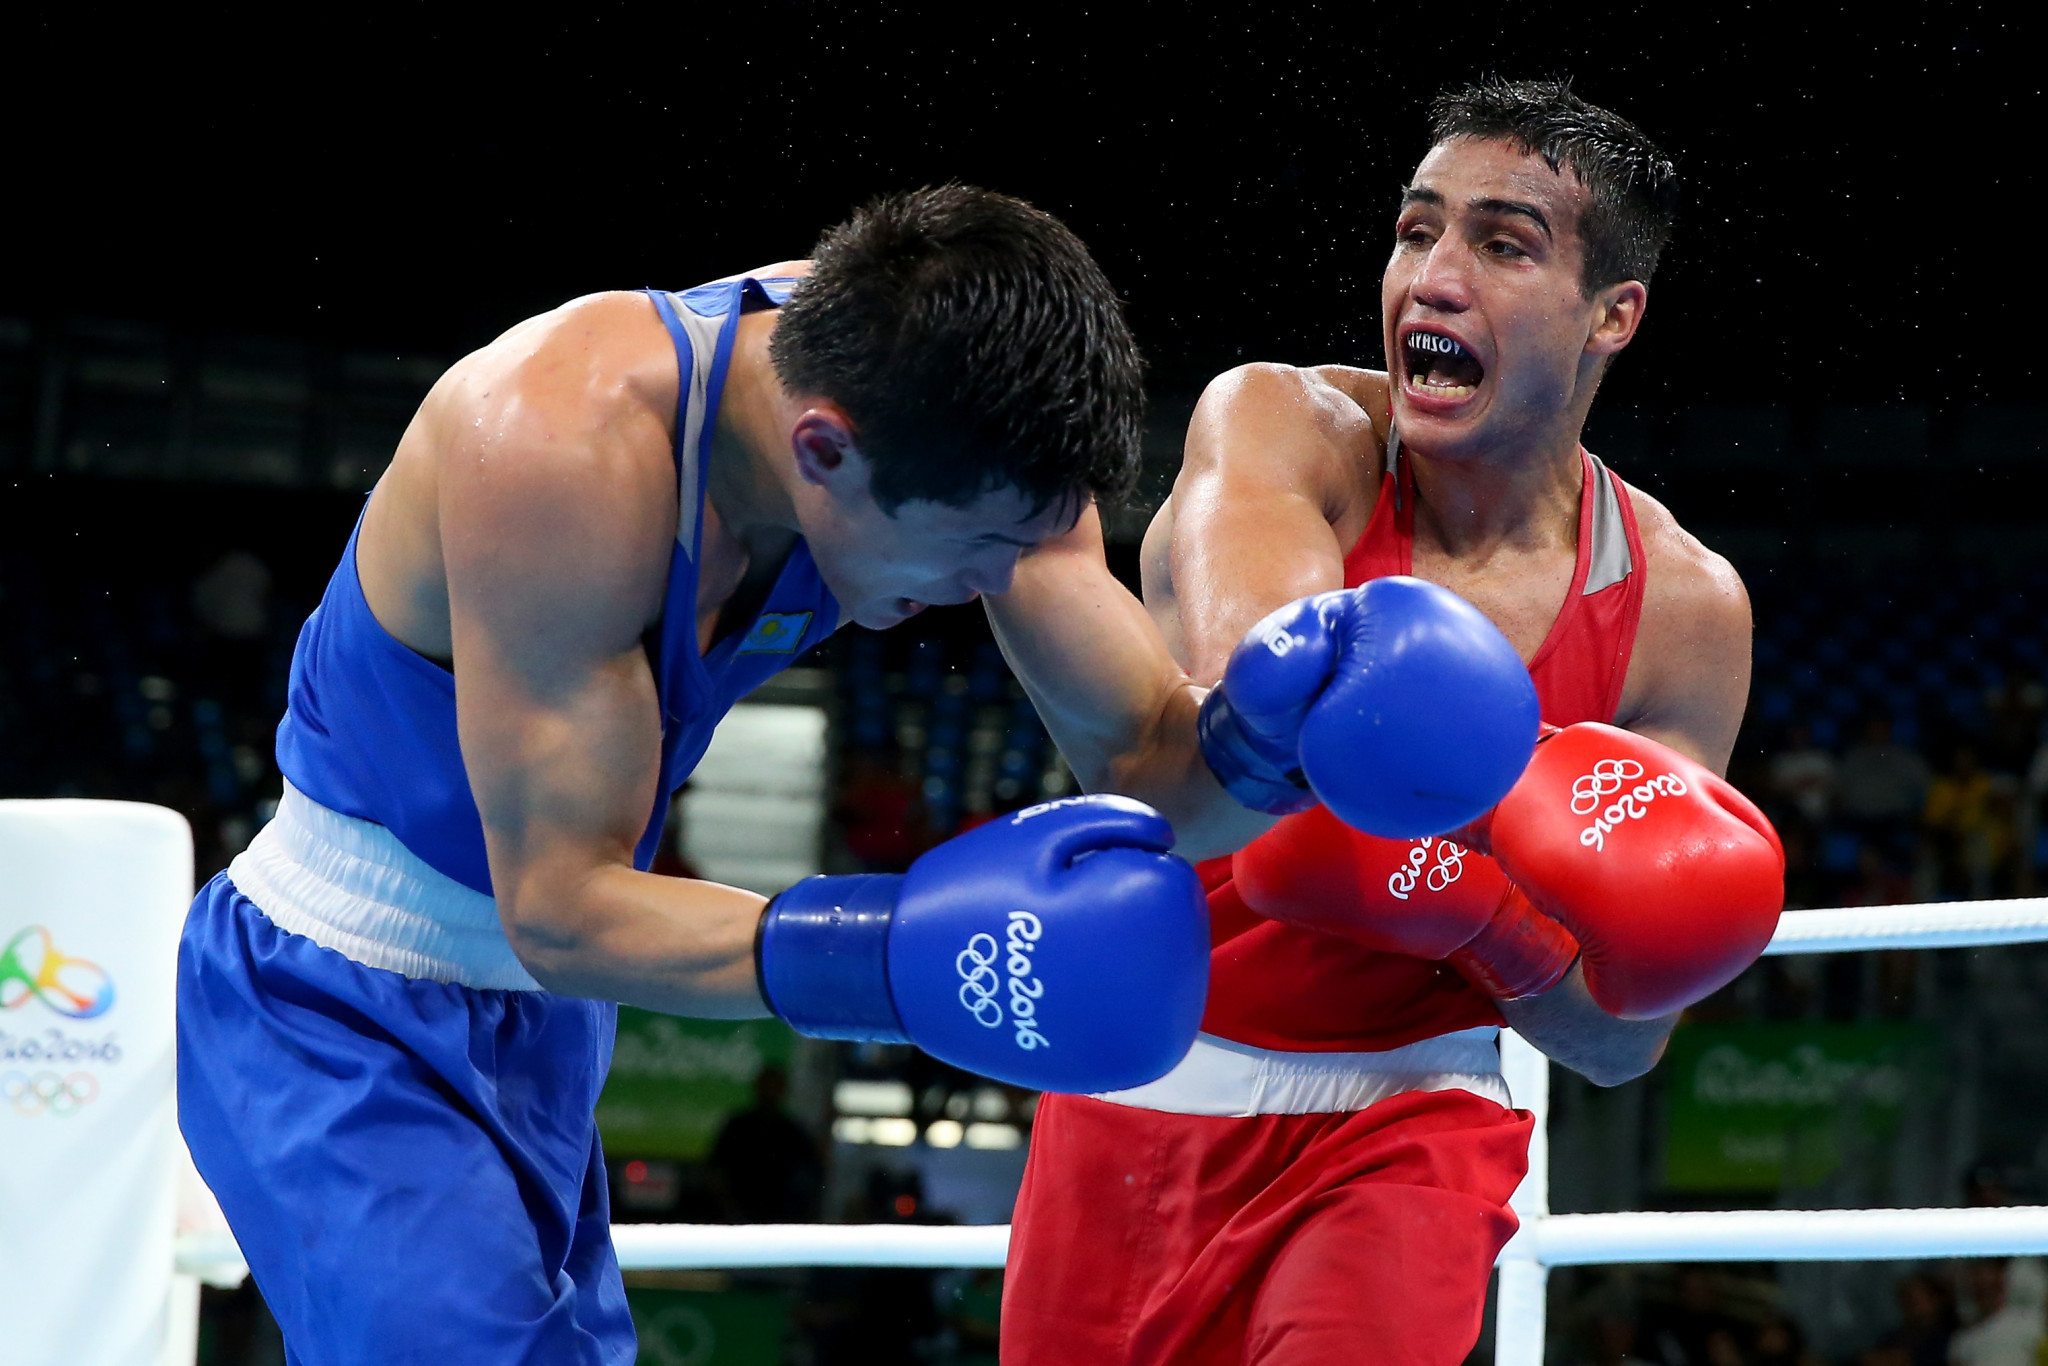 A boxing event not organised by AIBA could be held at Tokyo 2020 ©Getty Images